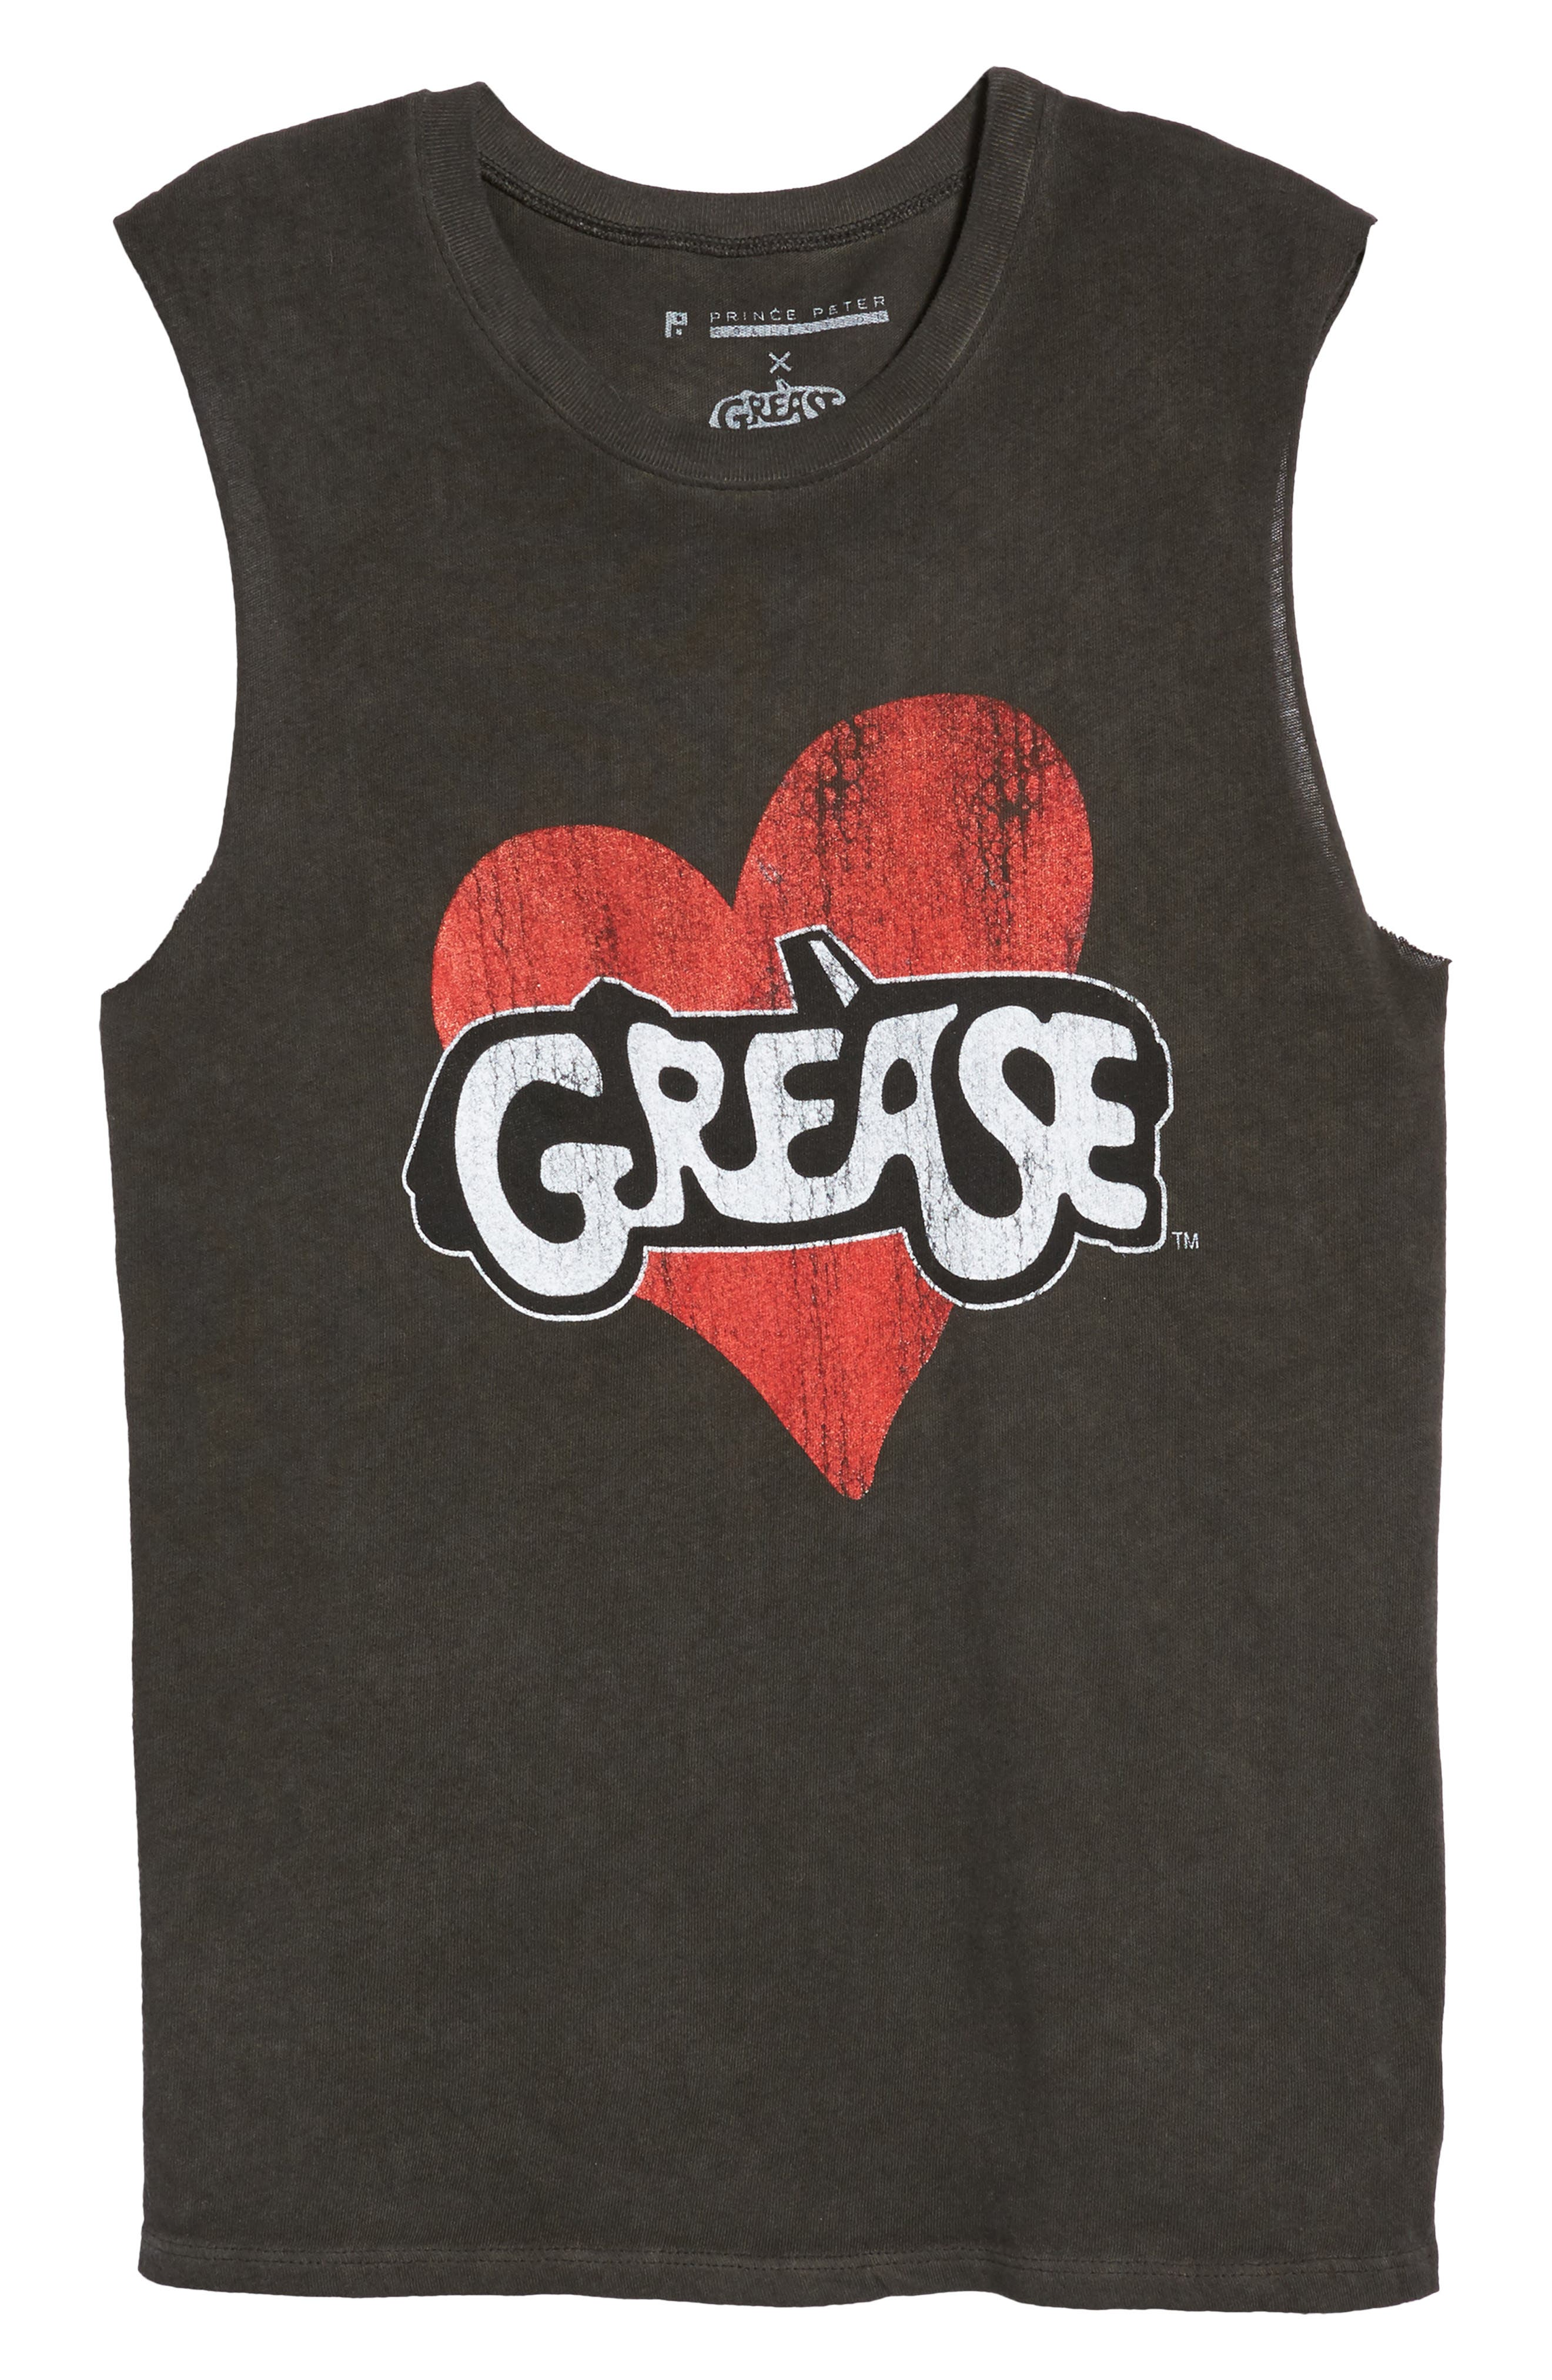 x Grease Muscle Tee,                             Alternate thumbnail 6, color,